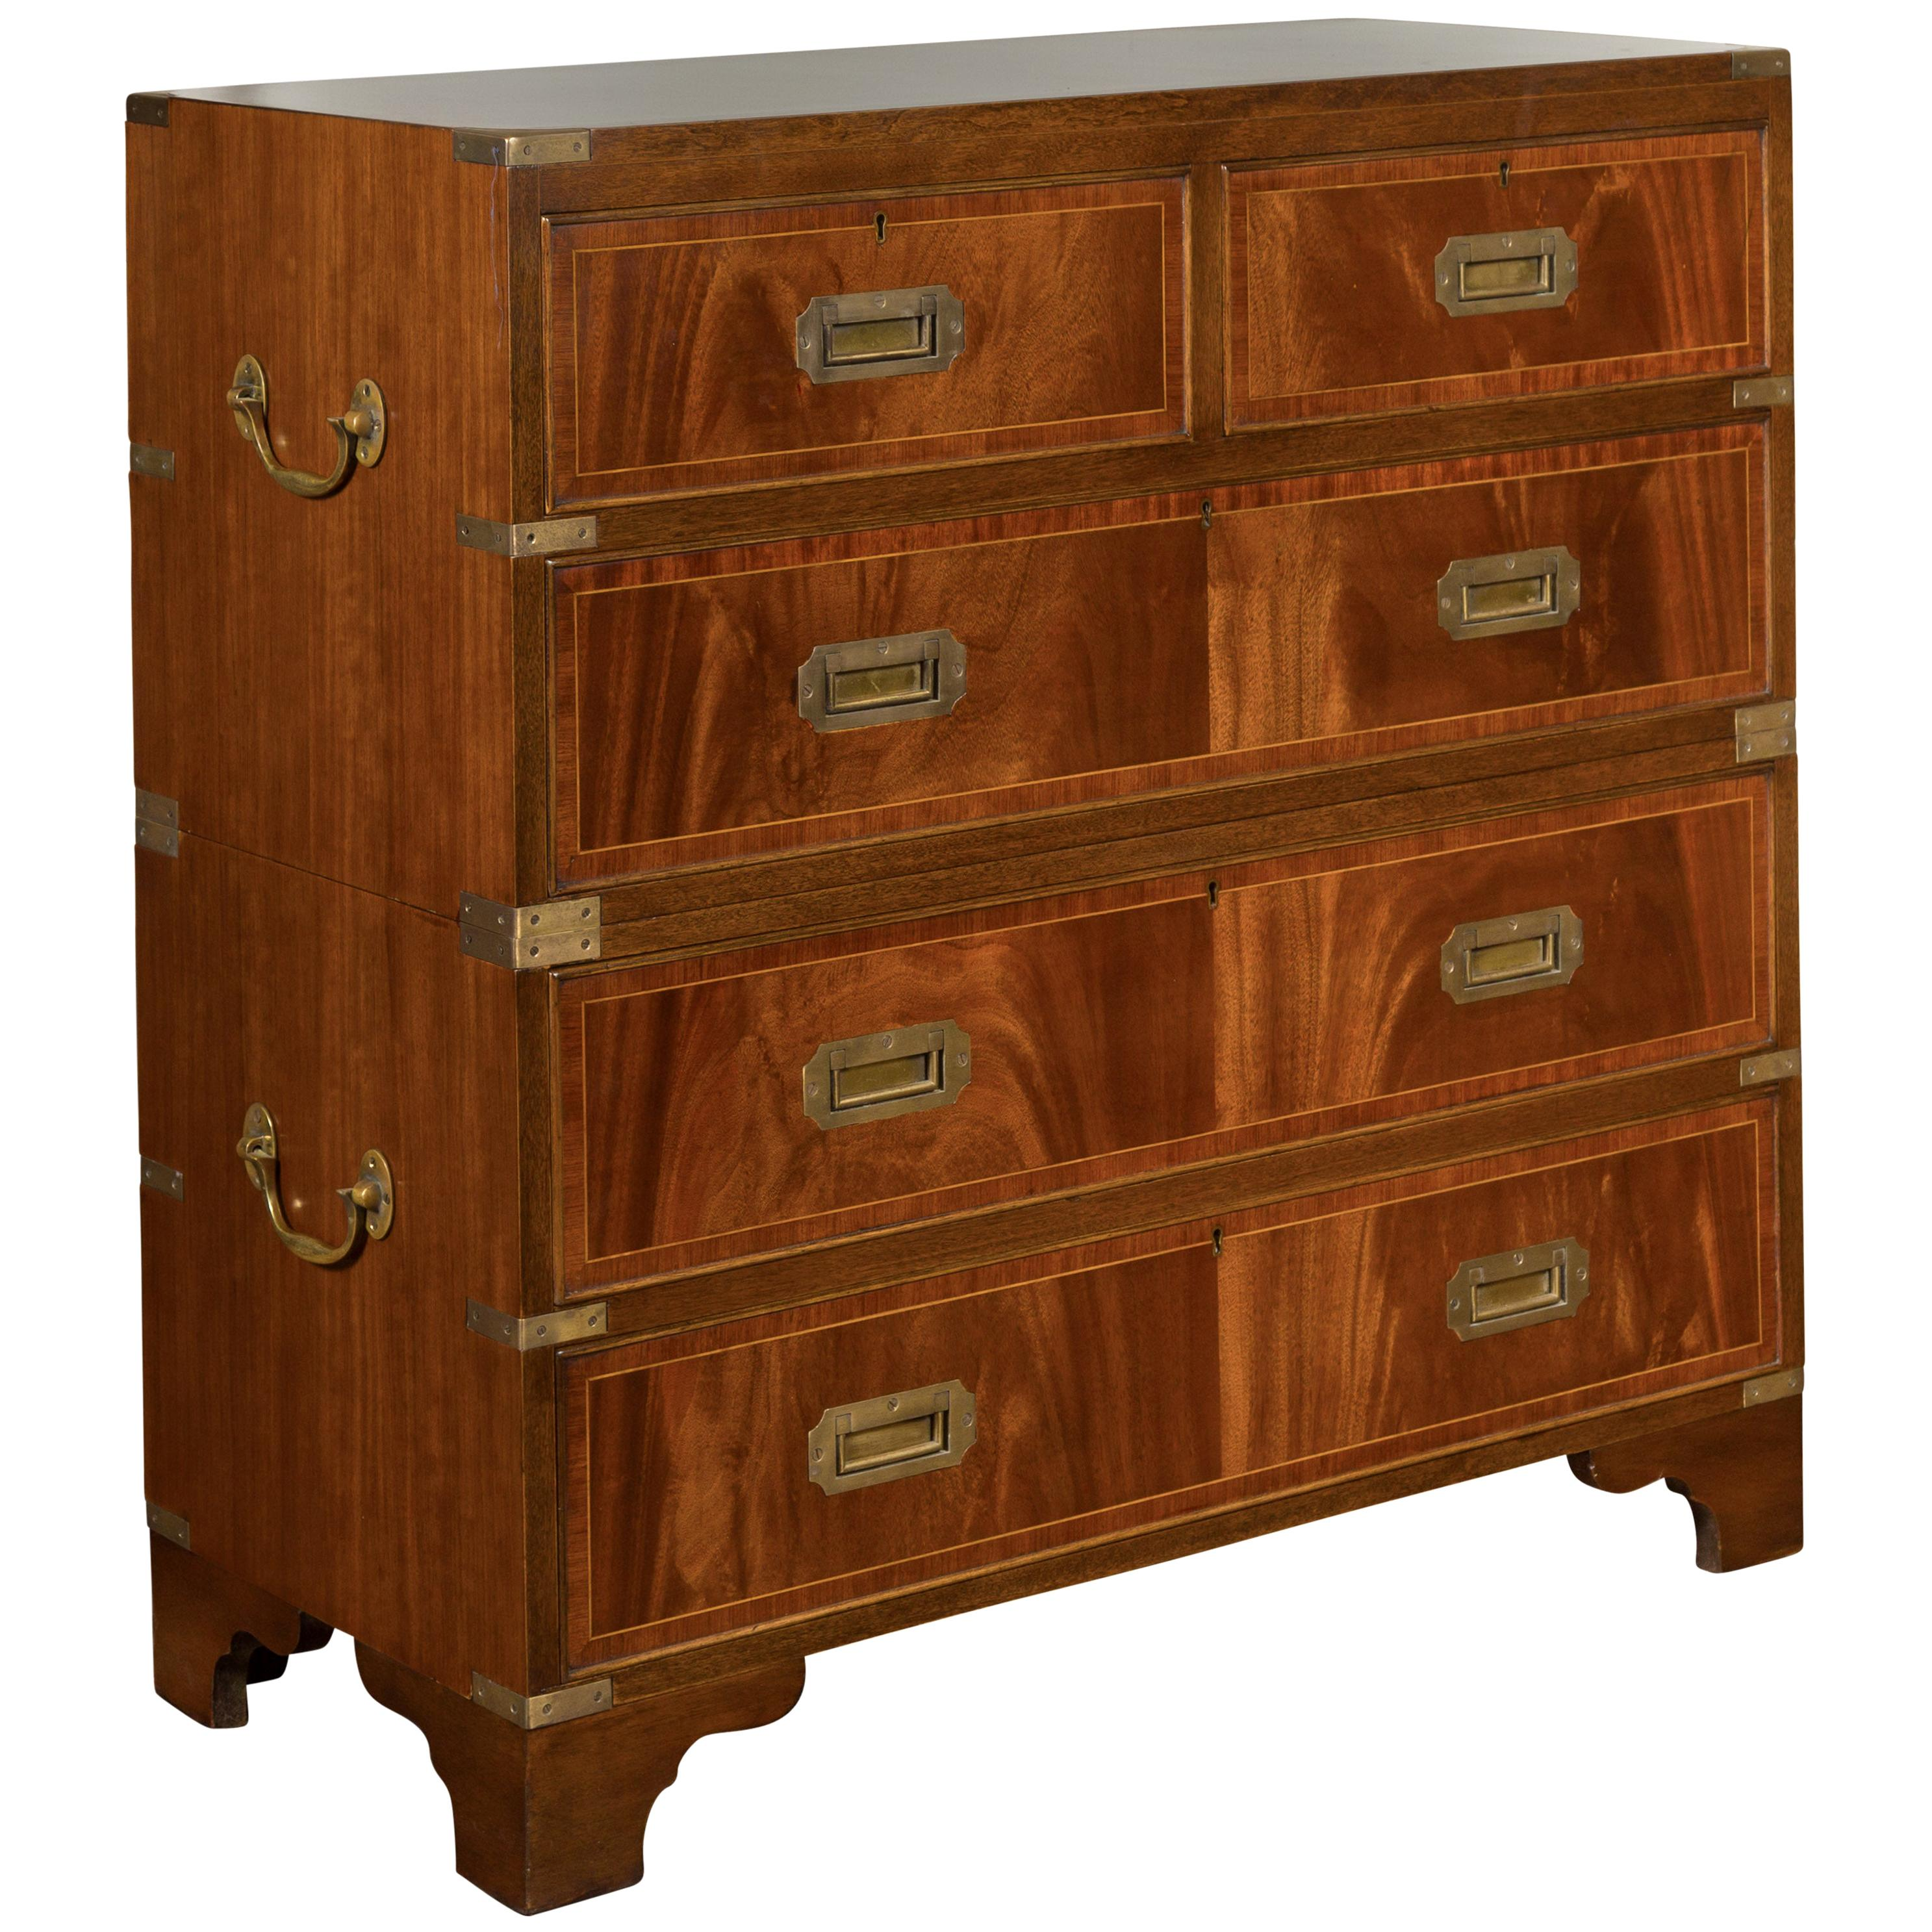 English Midcentury Campaign Five-Drawer Chest with Brass Hardware and Banding